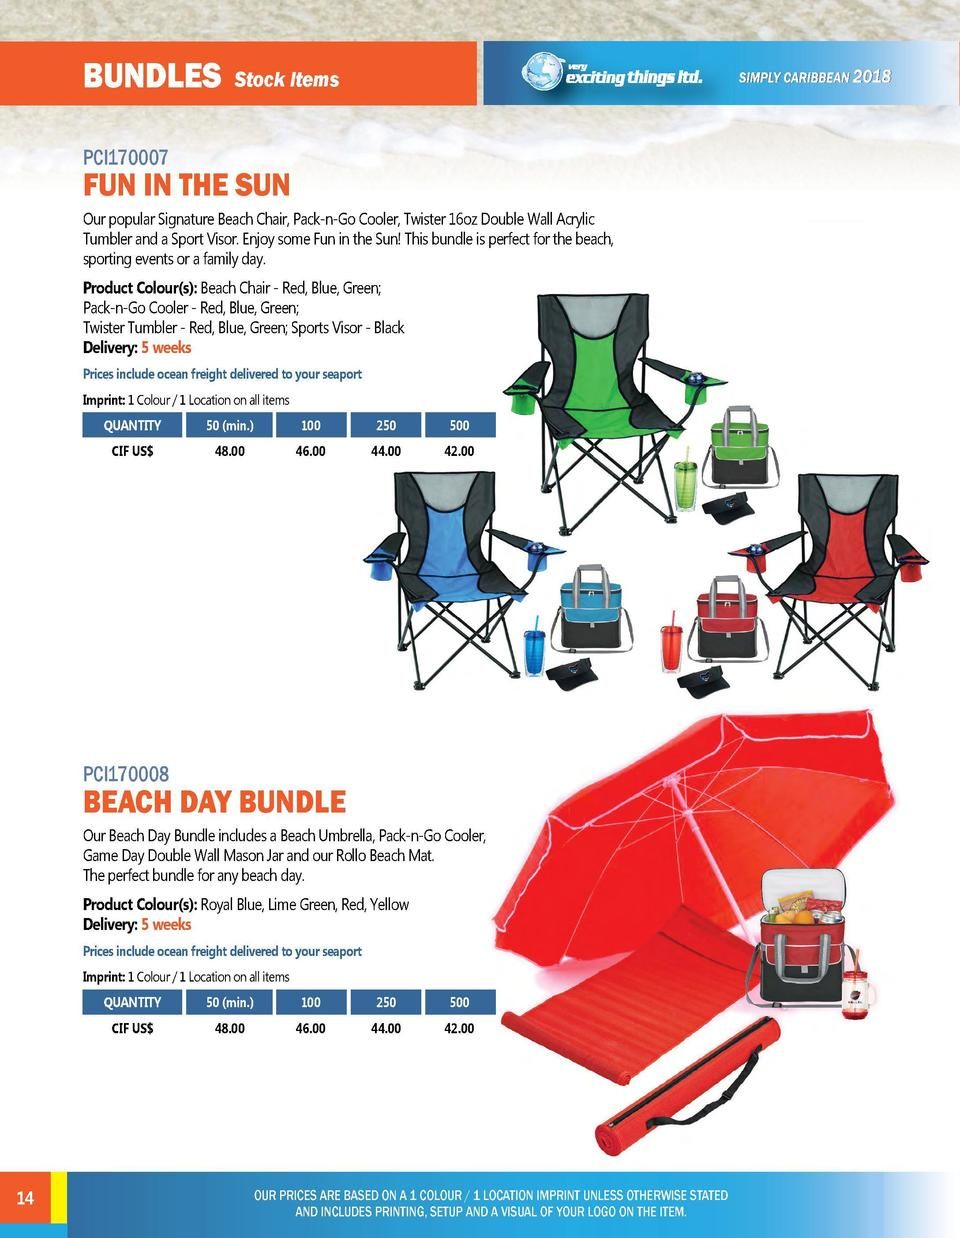 BUNDLES  BUNDLES  Stock Items  Stock Items  PCI170007  PCI170009  Our popular Signature Beach Chair, Pack-n-Go Cooler, Twi...